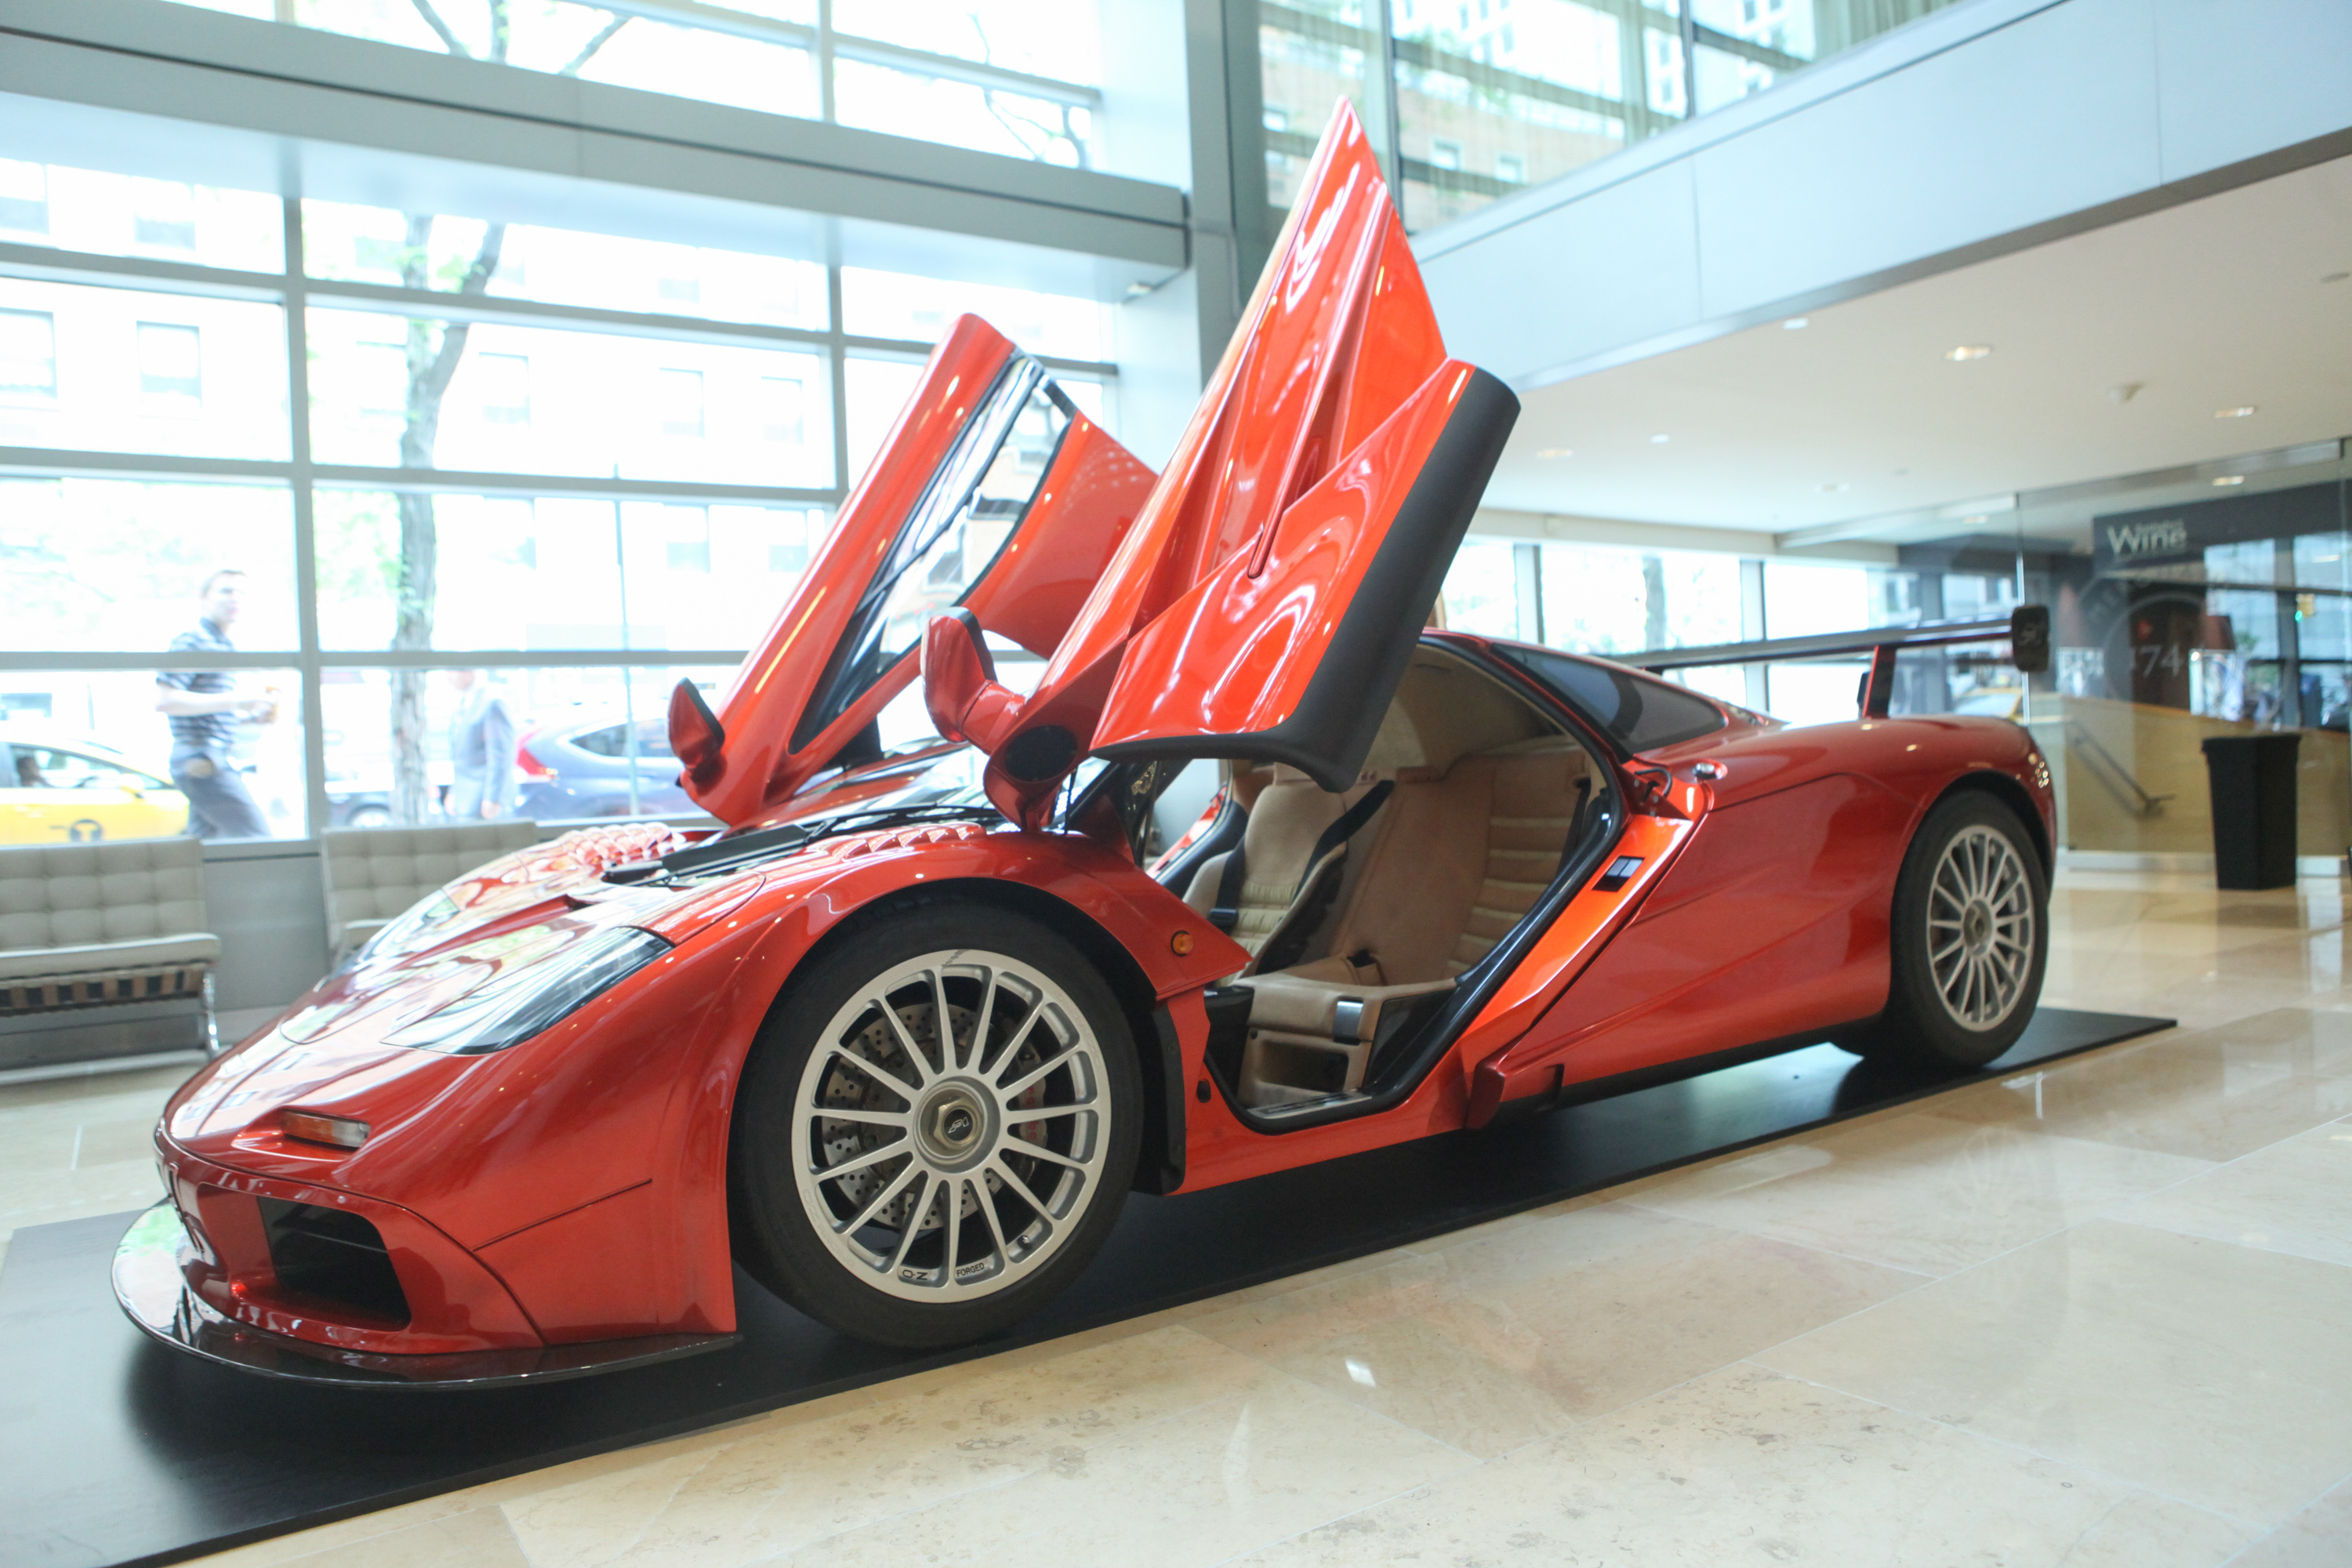 General view of the 1998 McLaren F1  LM-Specification supercar during McLaren's F1 New York media preview at Sotheby's on June 3, 2015 in New York City.